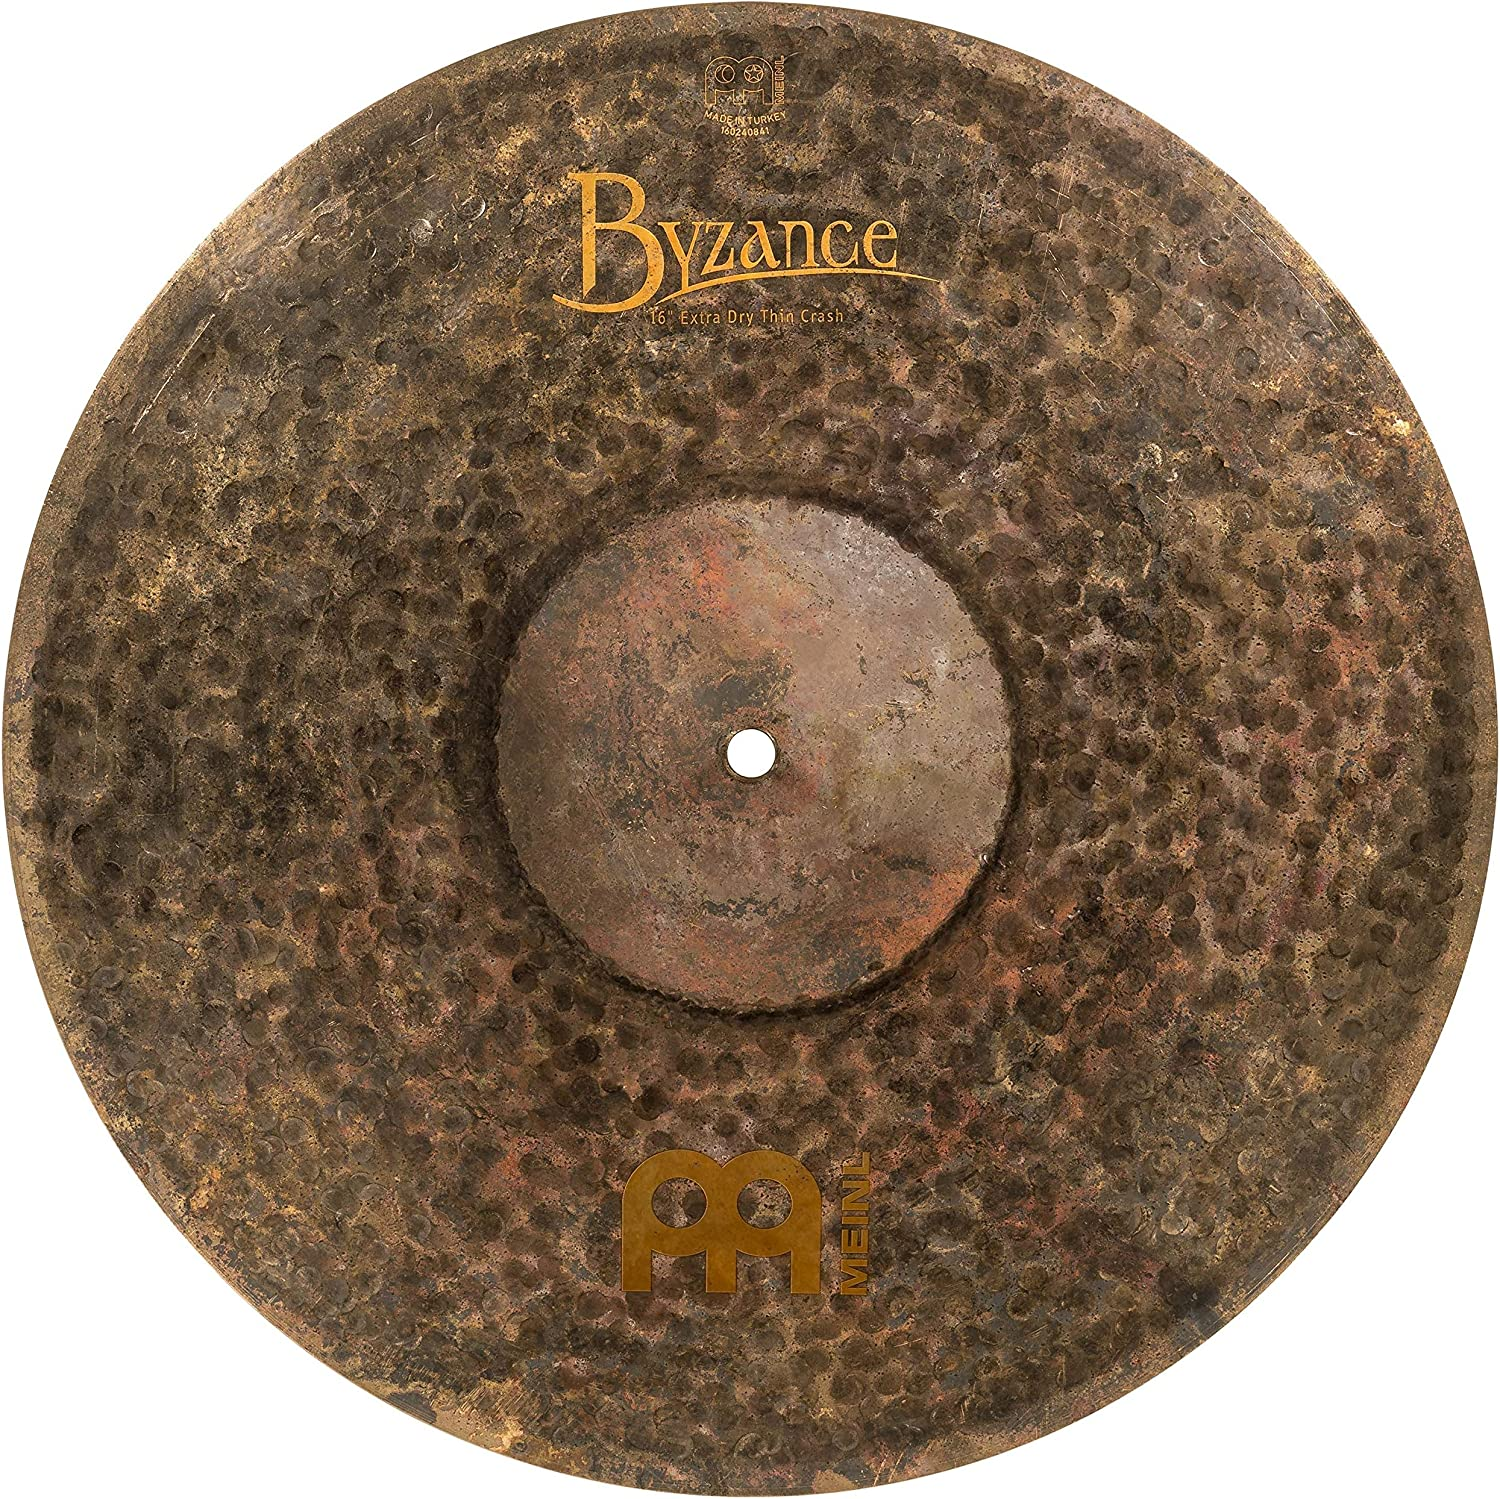 Meinl Cymbals Byzance Max 40% OFF 16